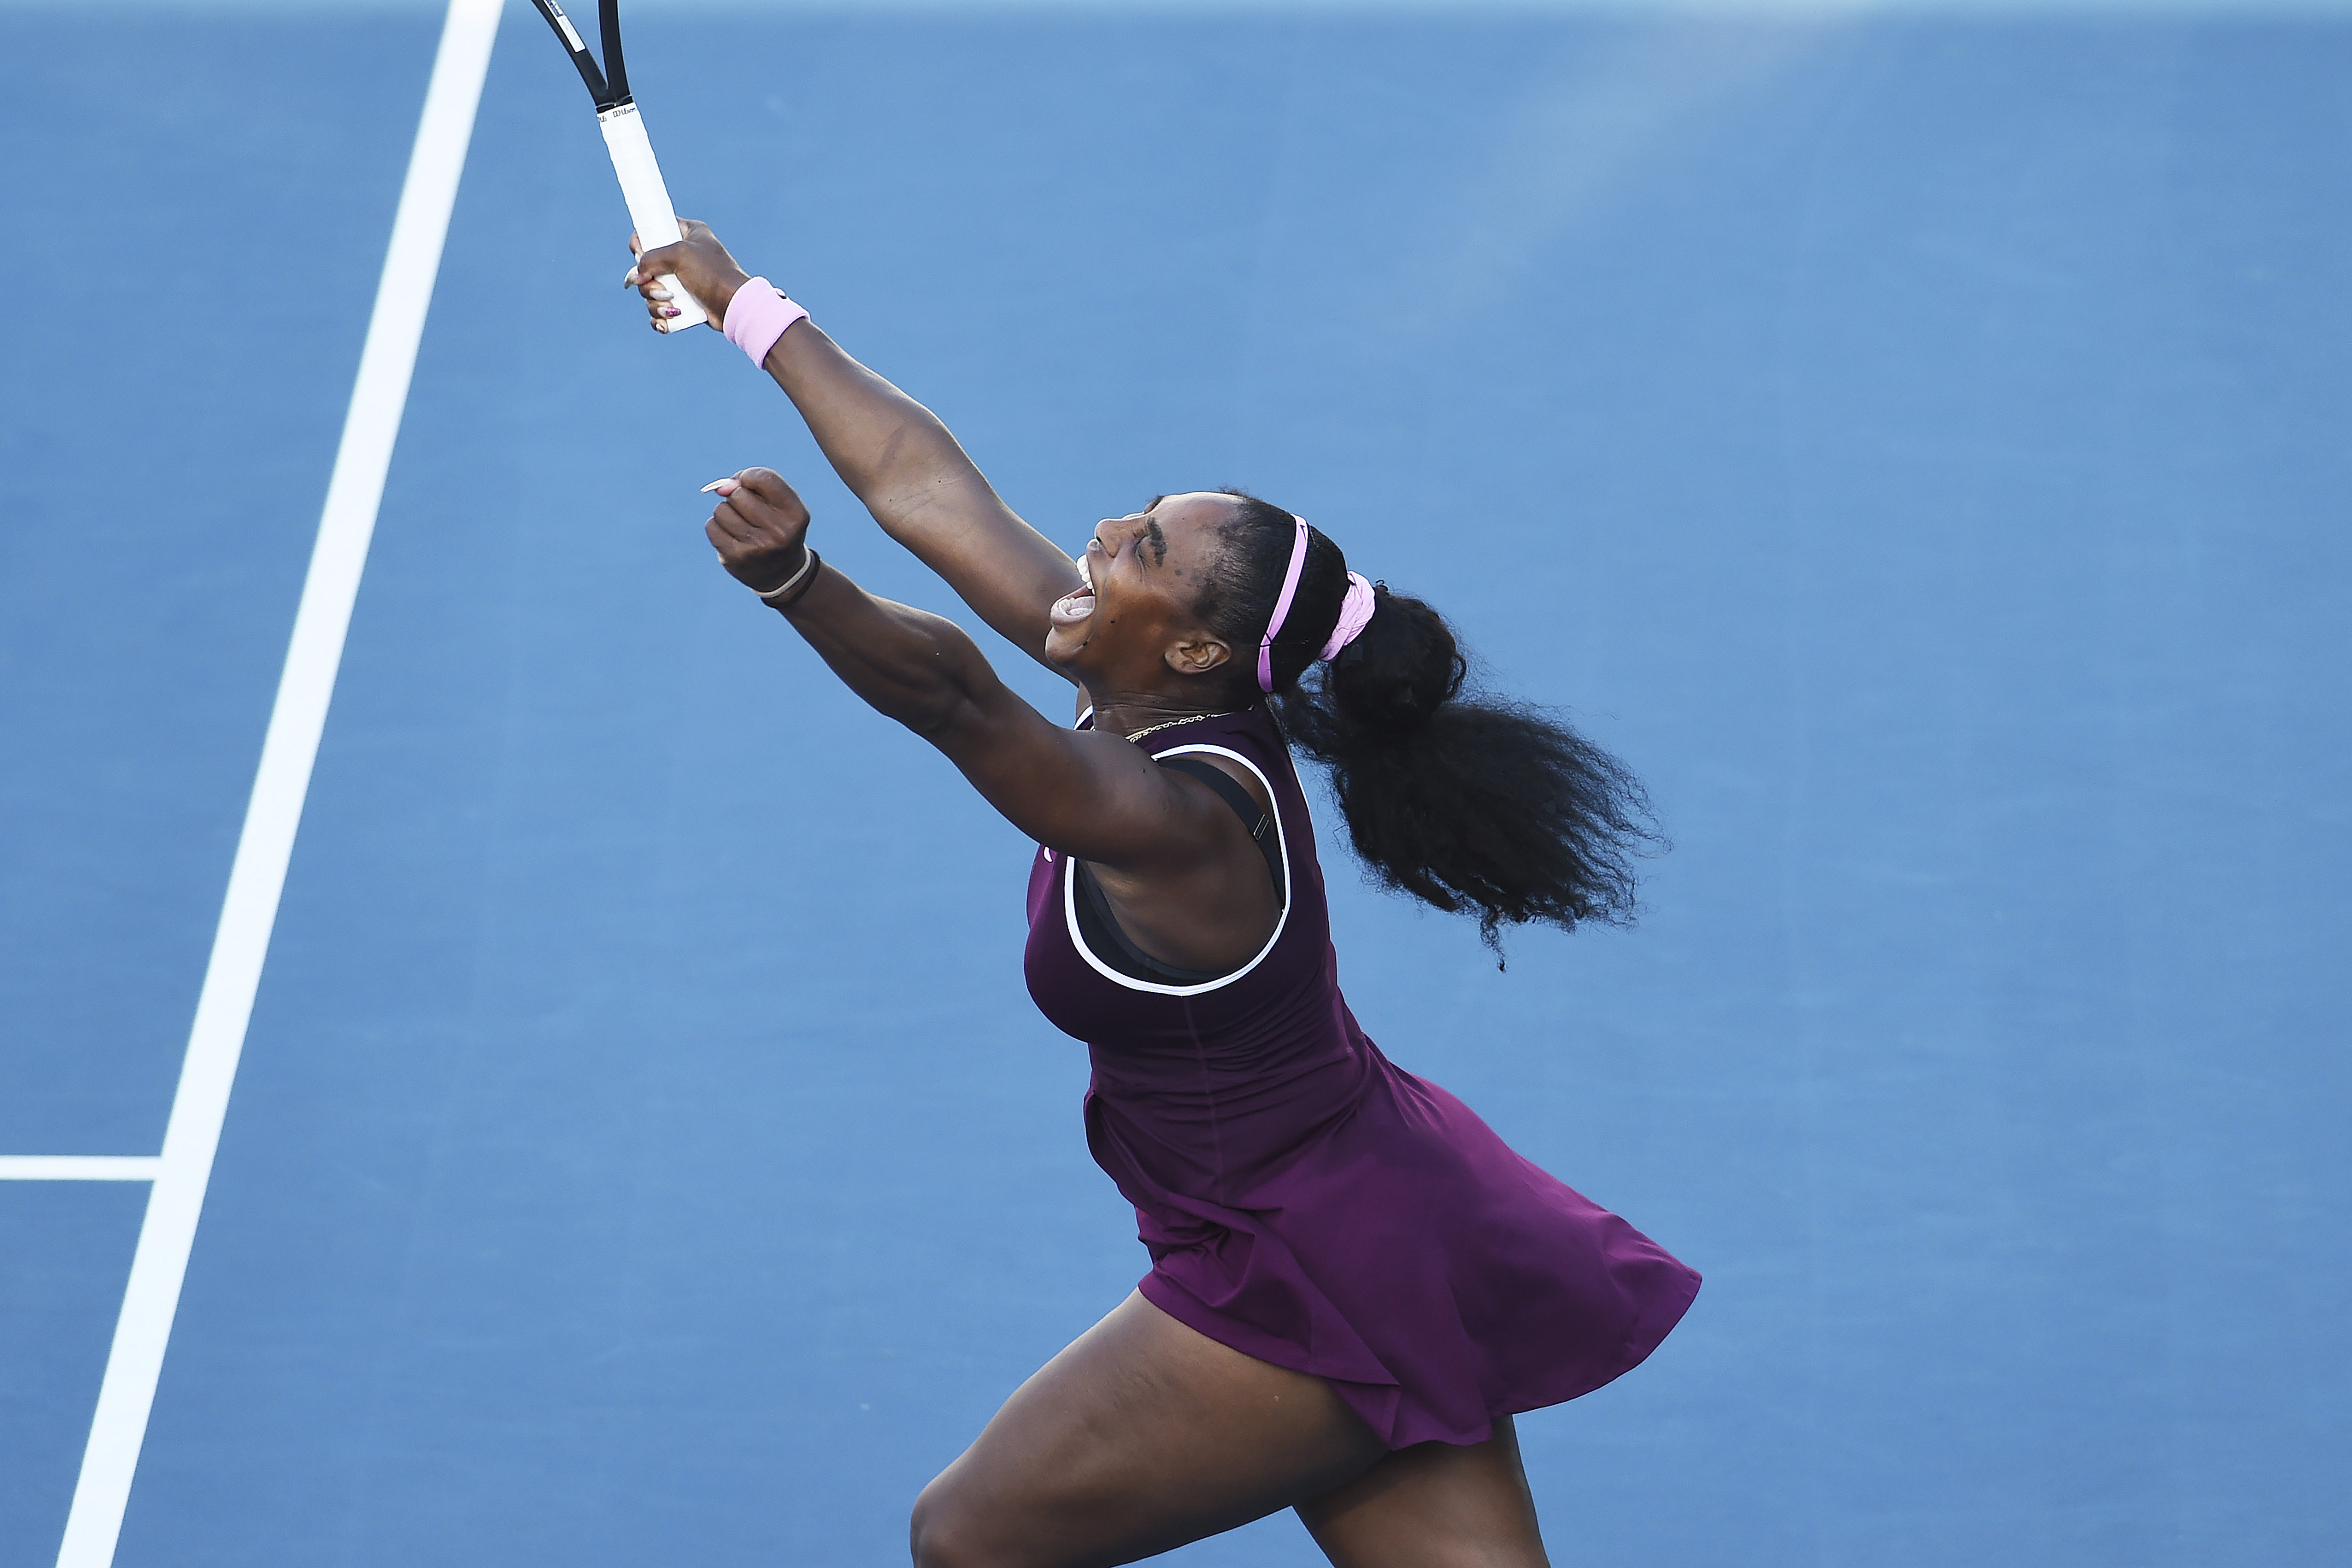 United States Serena Williams celebrates winning her finals singles match against United States Jessica Pegula at the ASB Classic in Auckland, New Zealand, on Jan. 12, 2020.